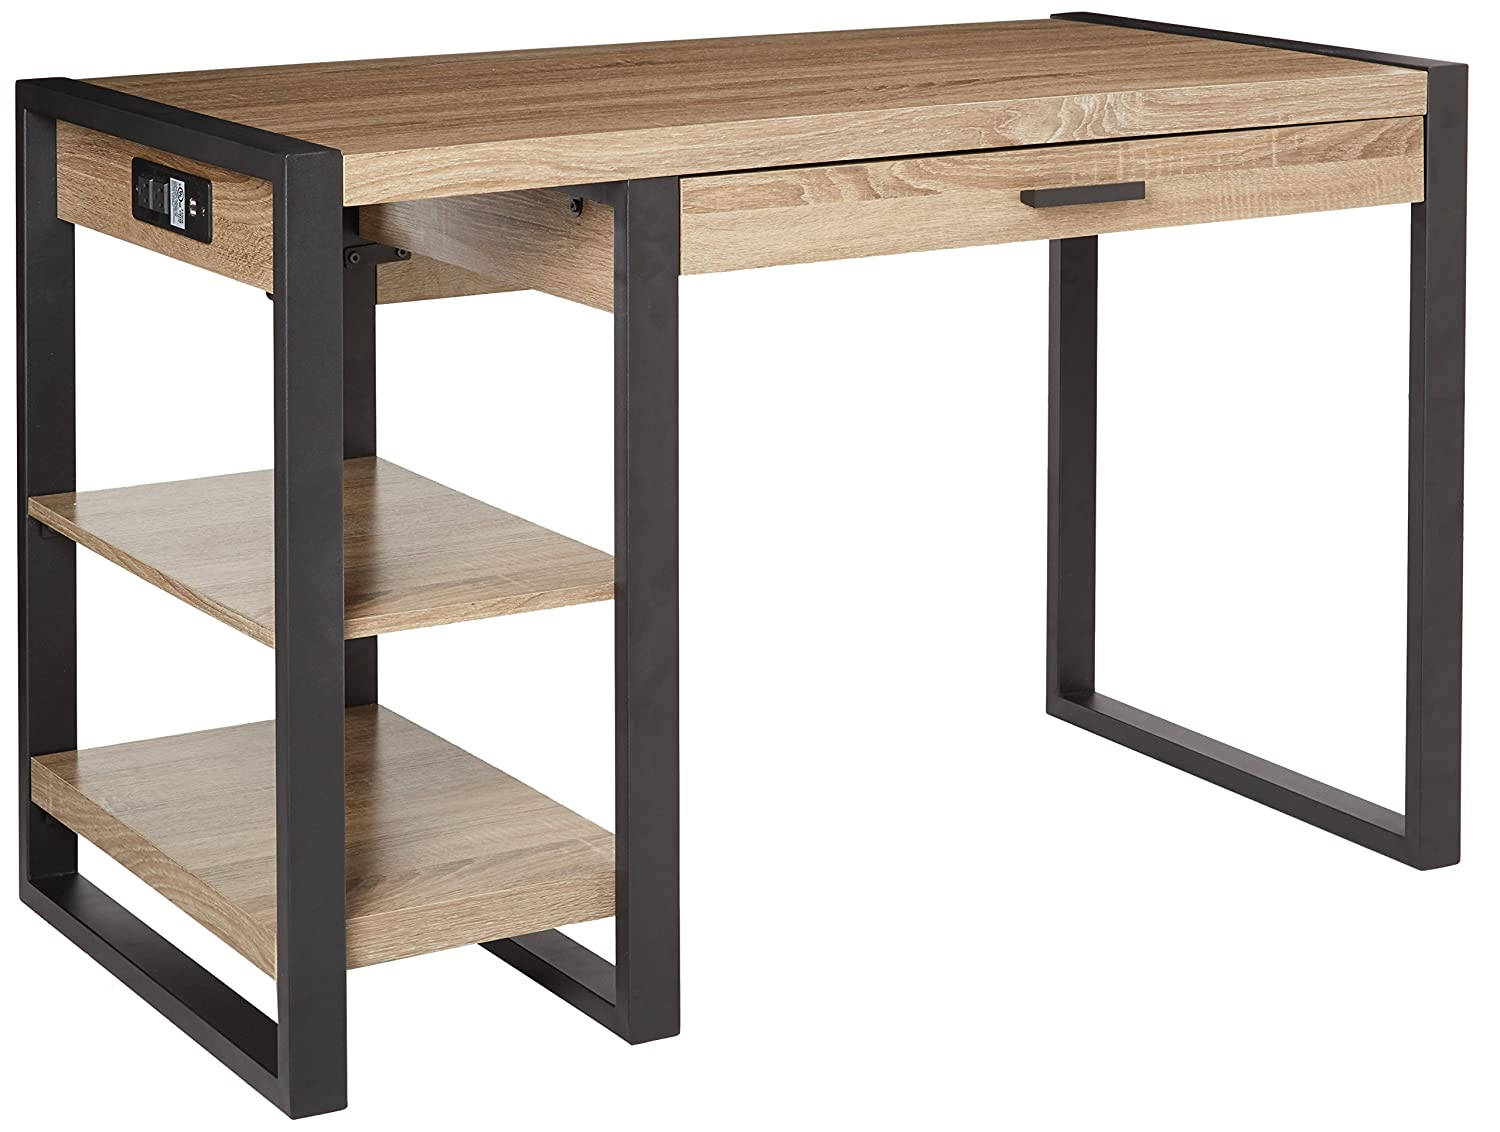 Computer table furniture - Amazon Com We Furniture 48 Industrial Wood Storage Computer Desk Driftwood Kitchen Dining